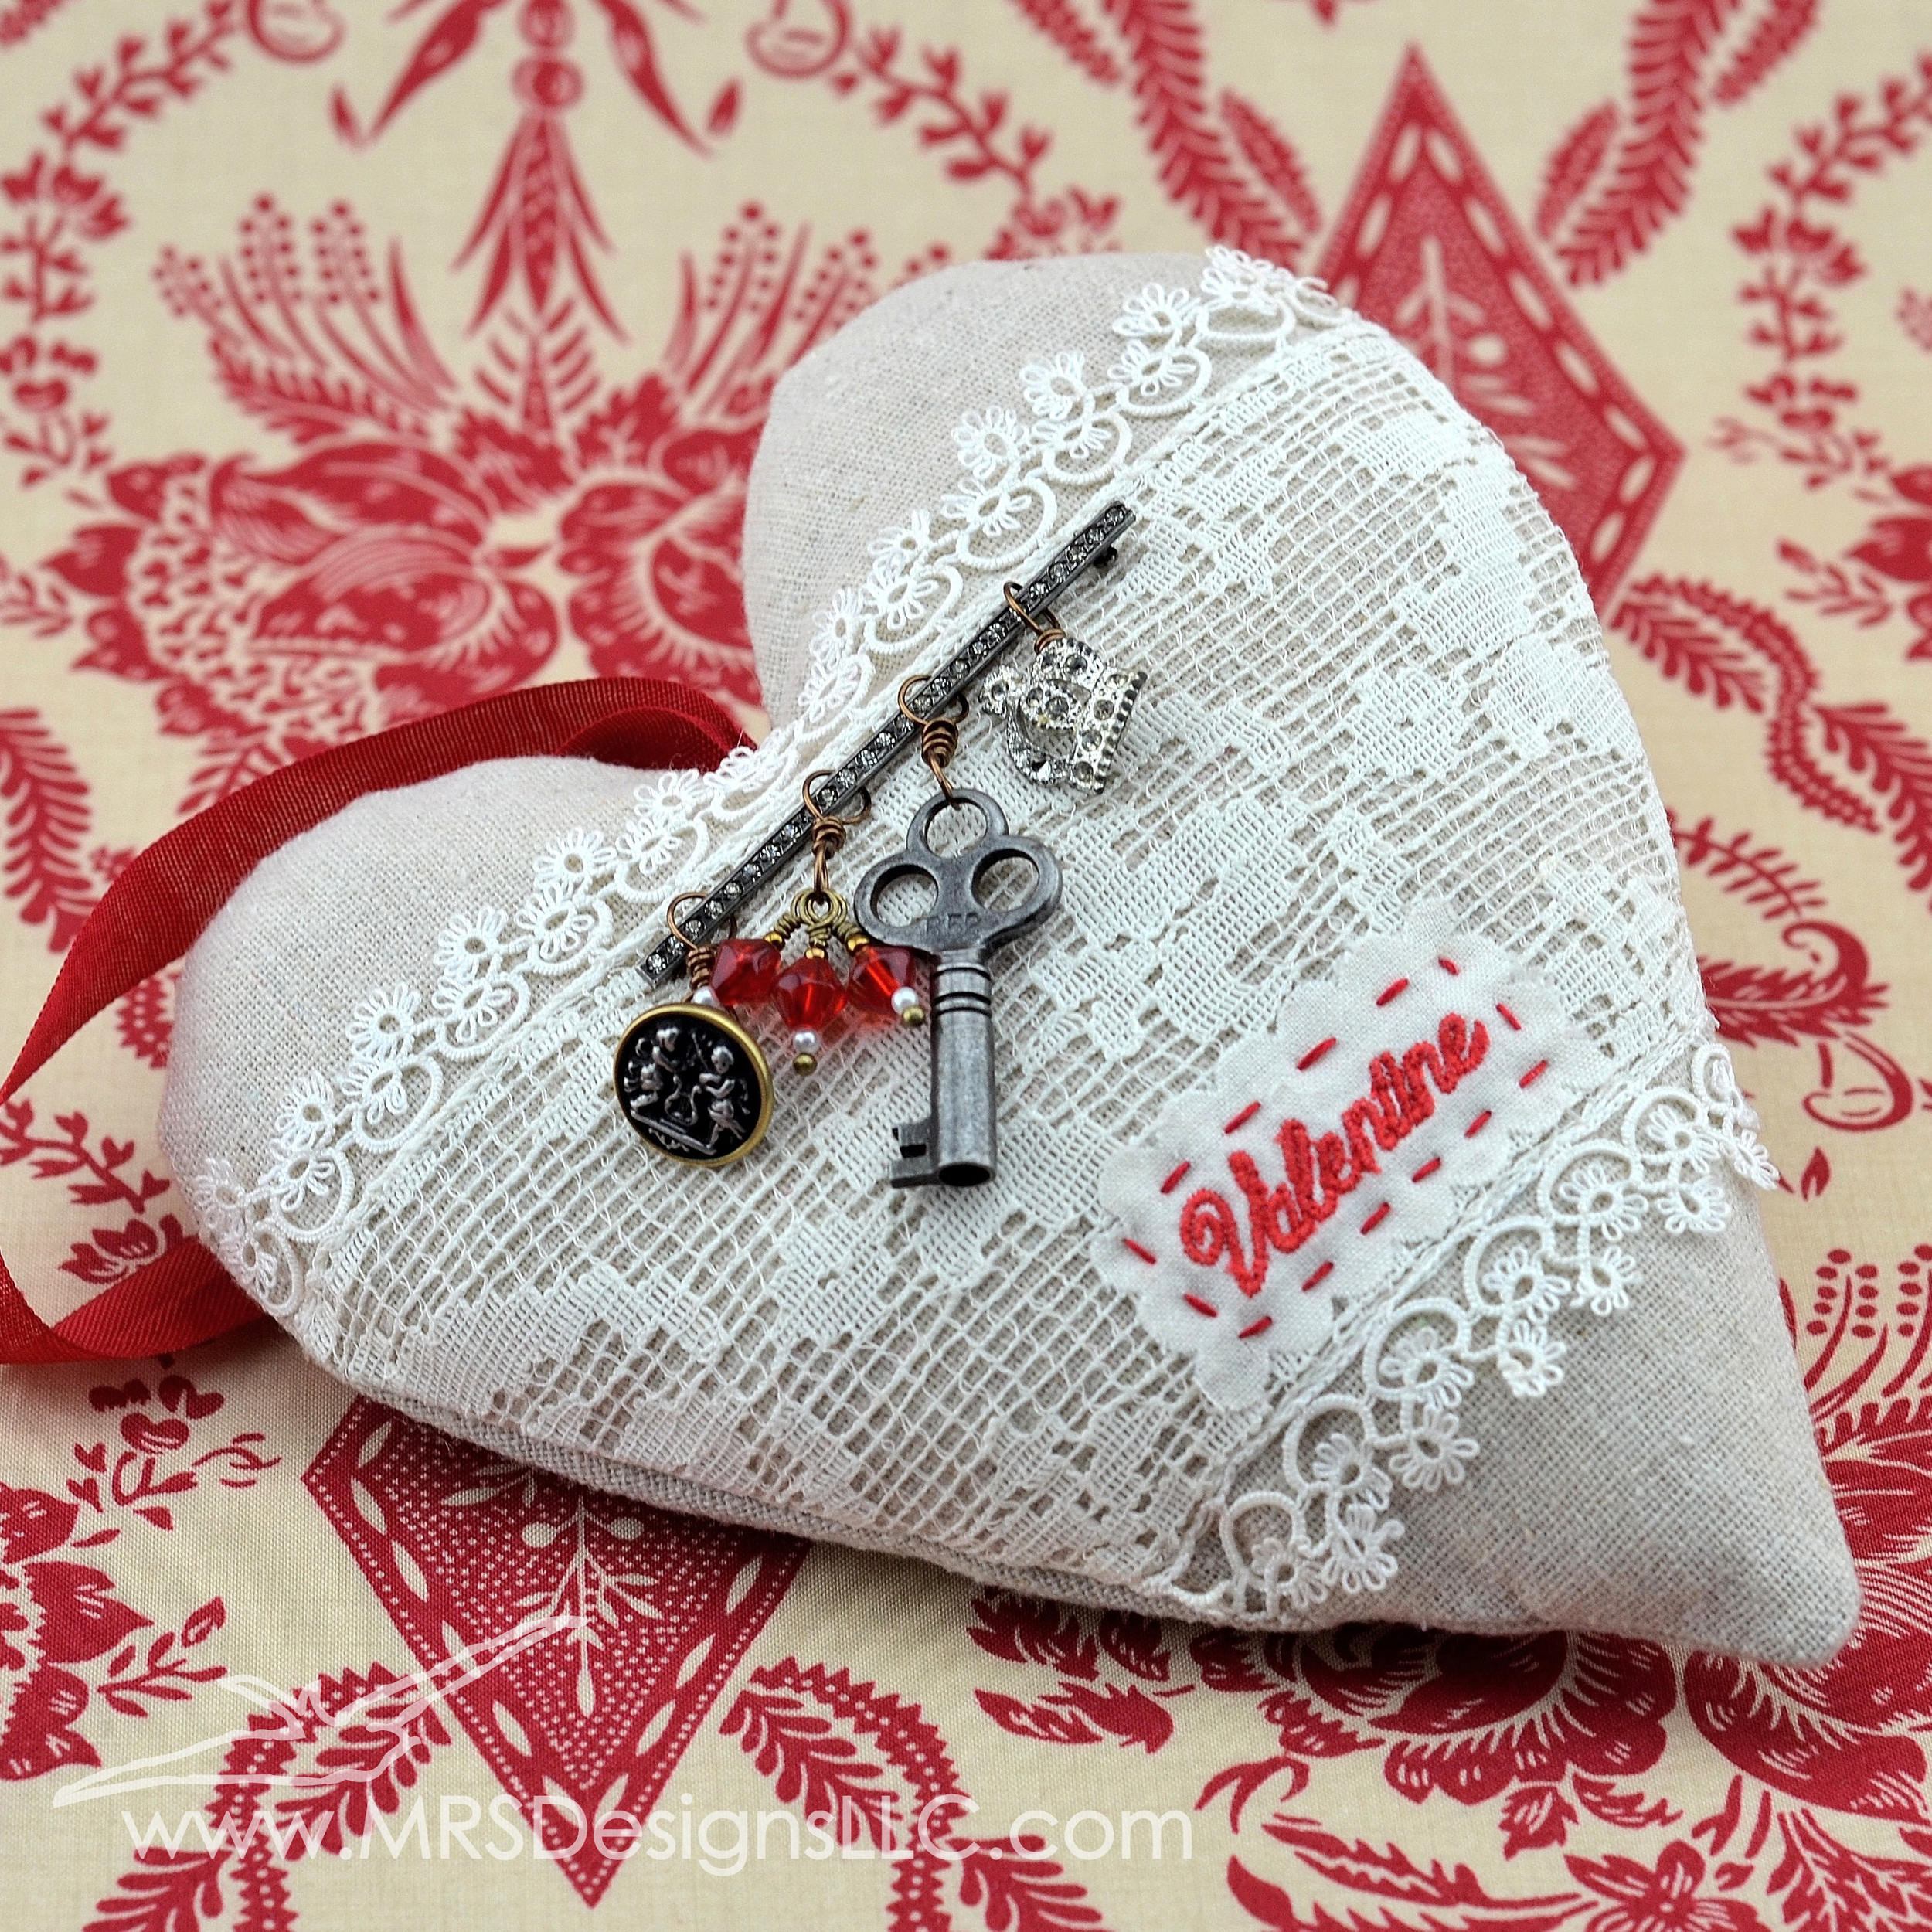 MRS Designs - Heart Pillows with Vintage Lace, Button, and Pin